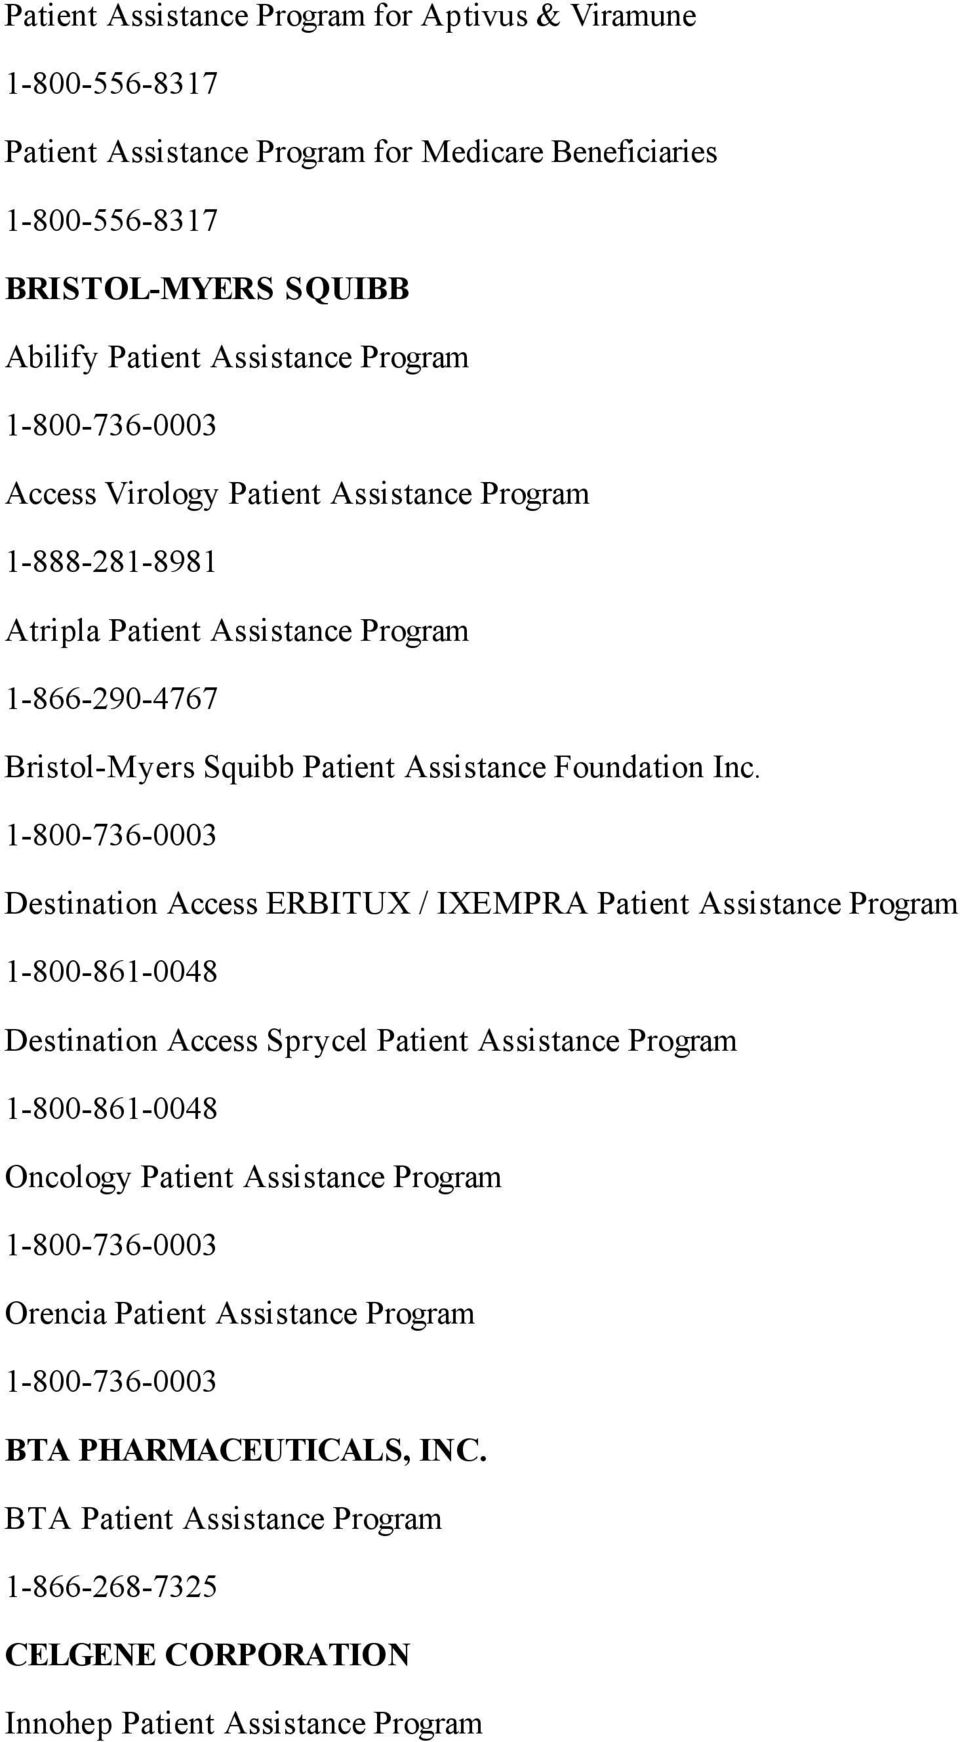 1-800-736-0003 Destination Access ERBITUX / IXEMPRA Patient Assistance Program 1-800-861-0048 Destination Access Sprycel Patient Assistance Program 1-800-861-0048 Oncology Patient